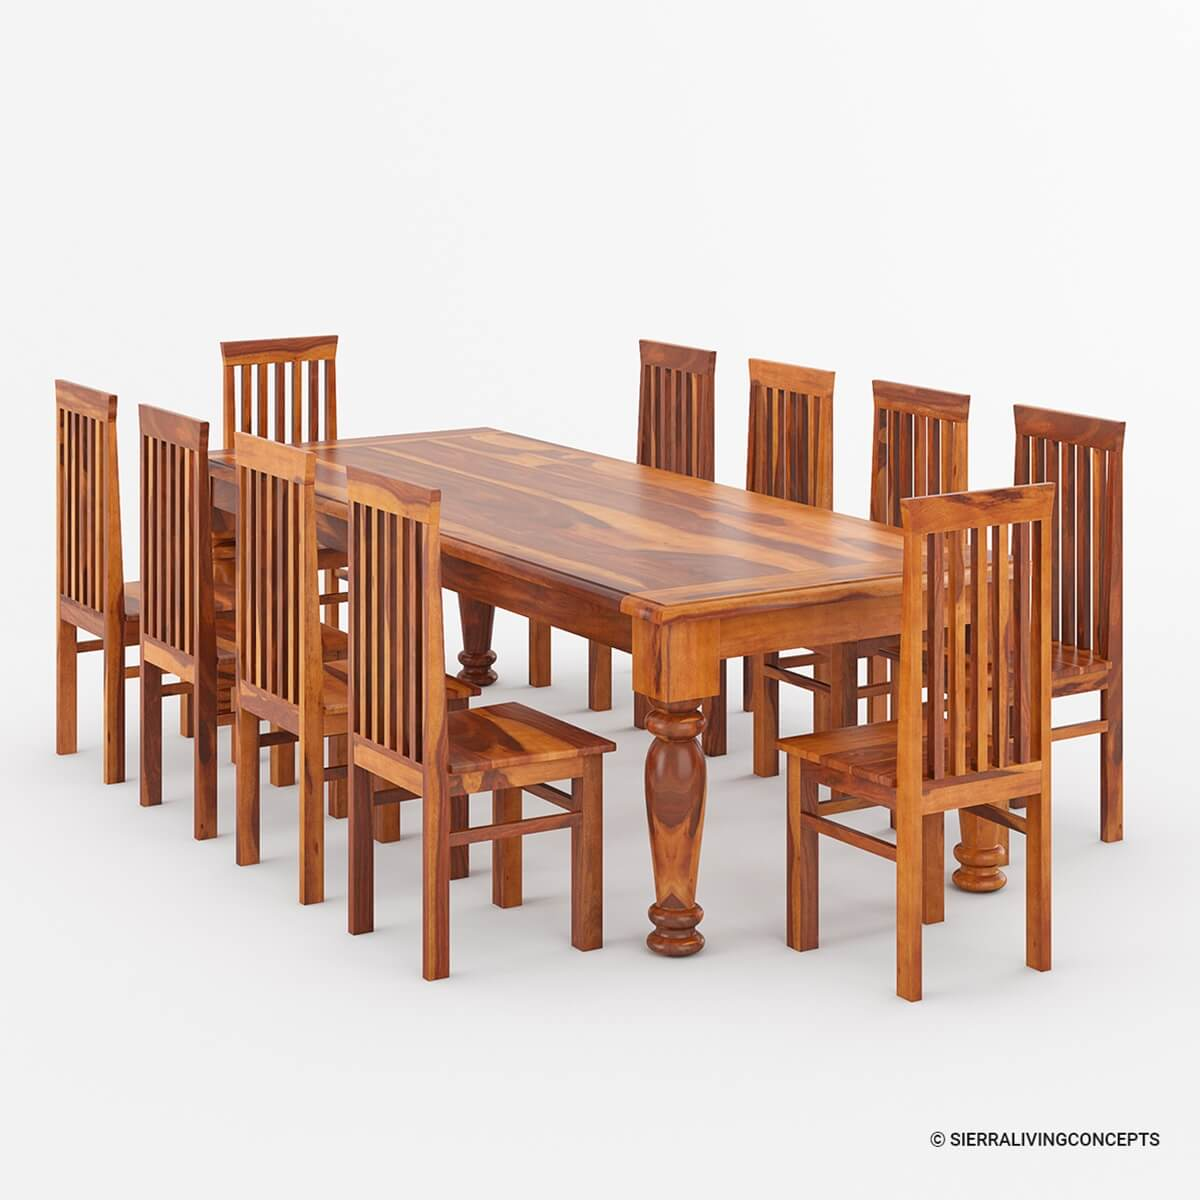 Rustic Furniture Solid Wood Large Dining Table 8 Chair Set: Clermont Rustic Furniture Solid Wood Large Dining Table